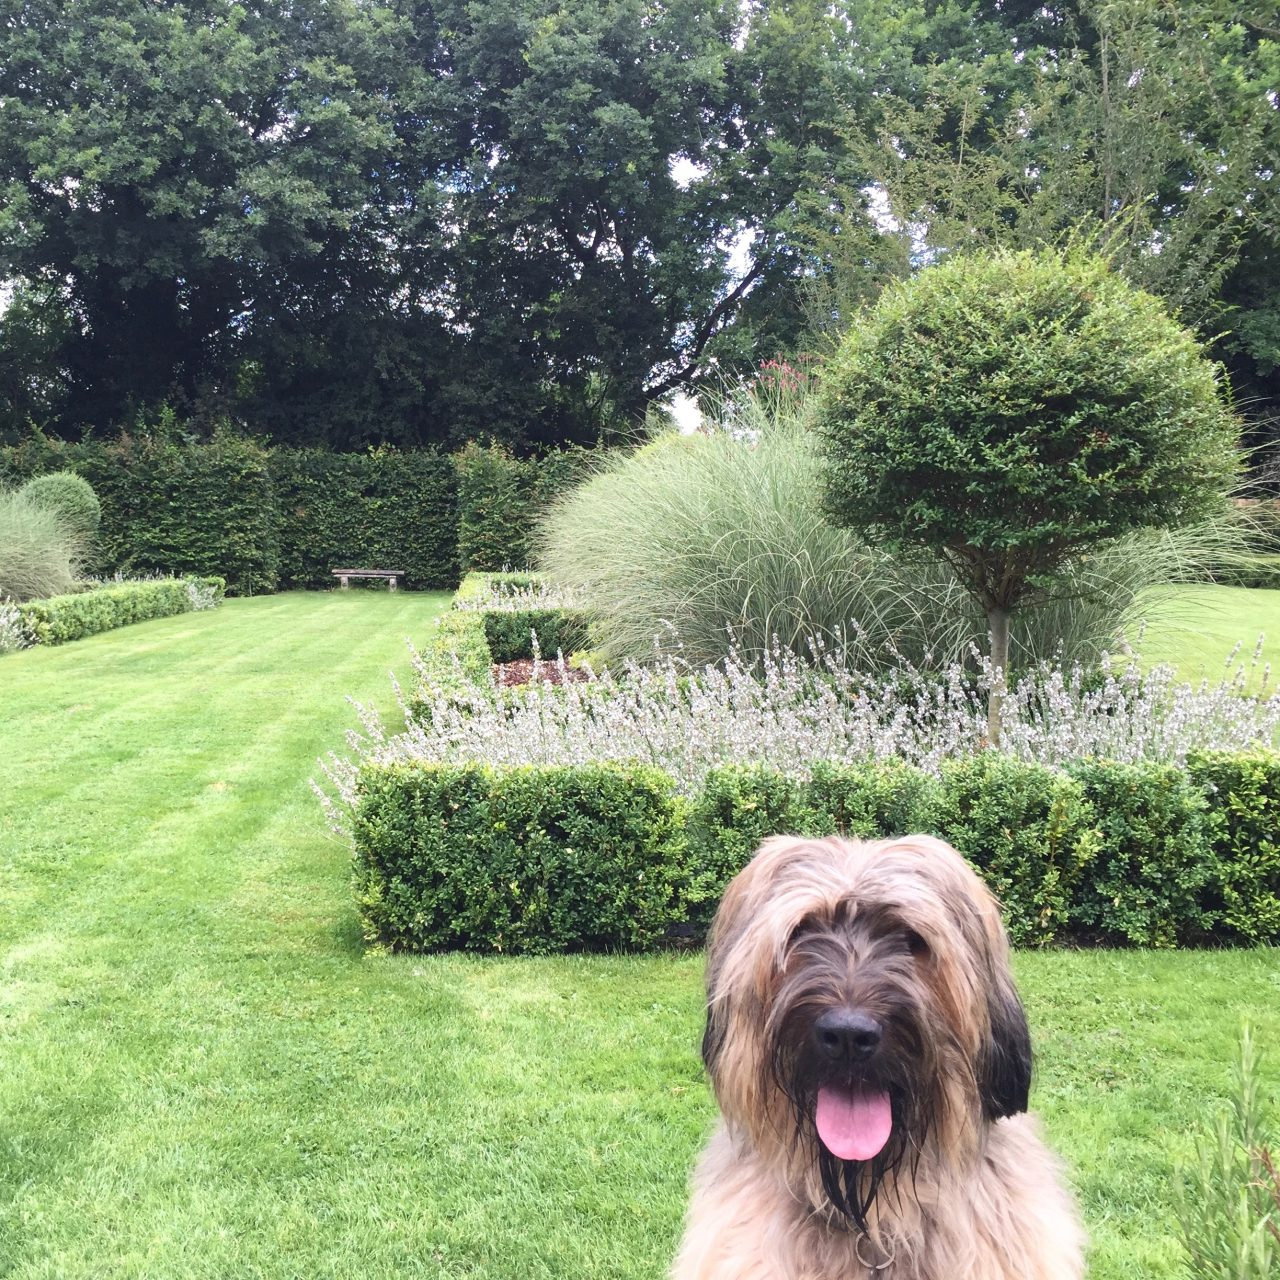 Our briard Charlie in our own garden here in Buckinghamshire. Although a formal garden design it is also a dog friendly garden